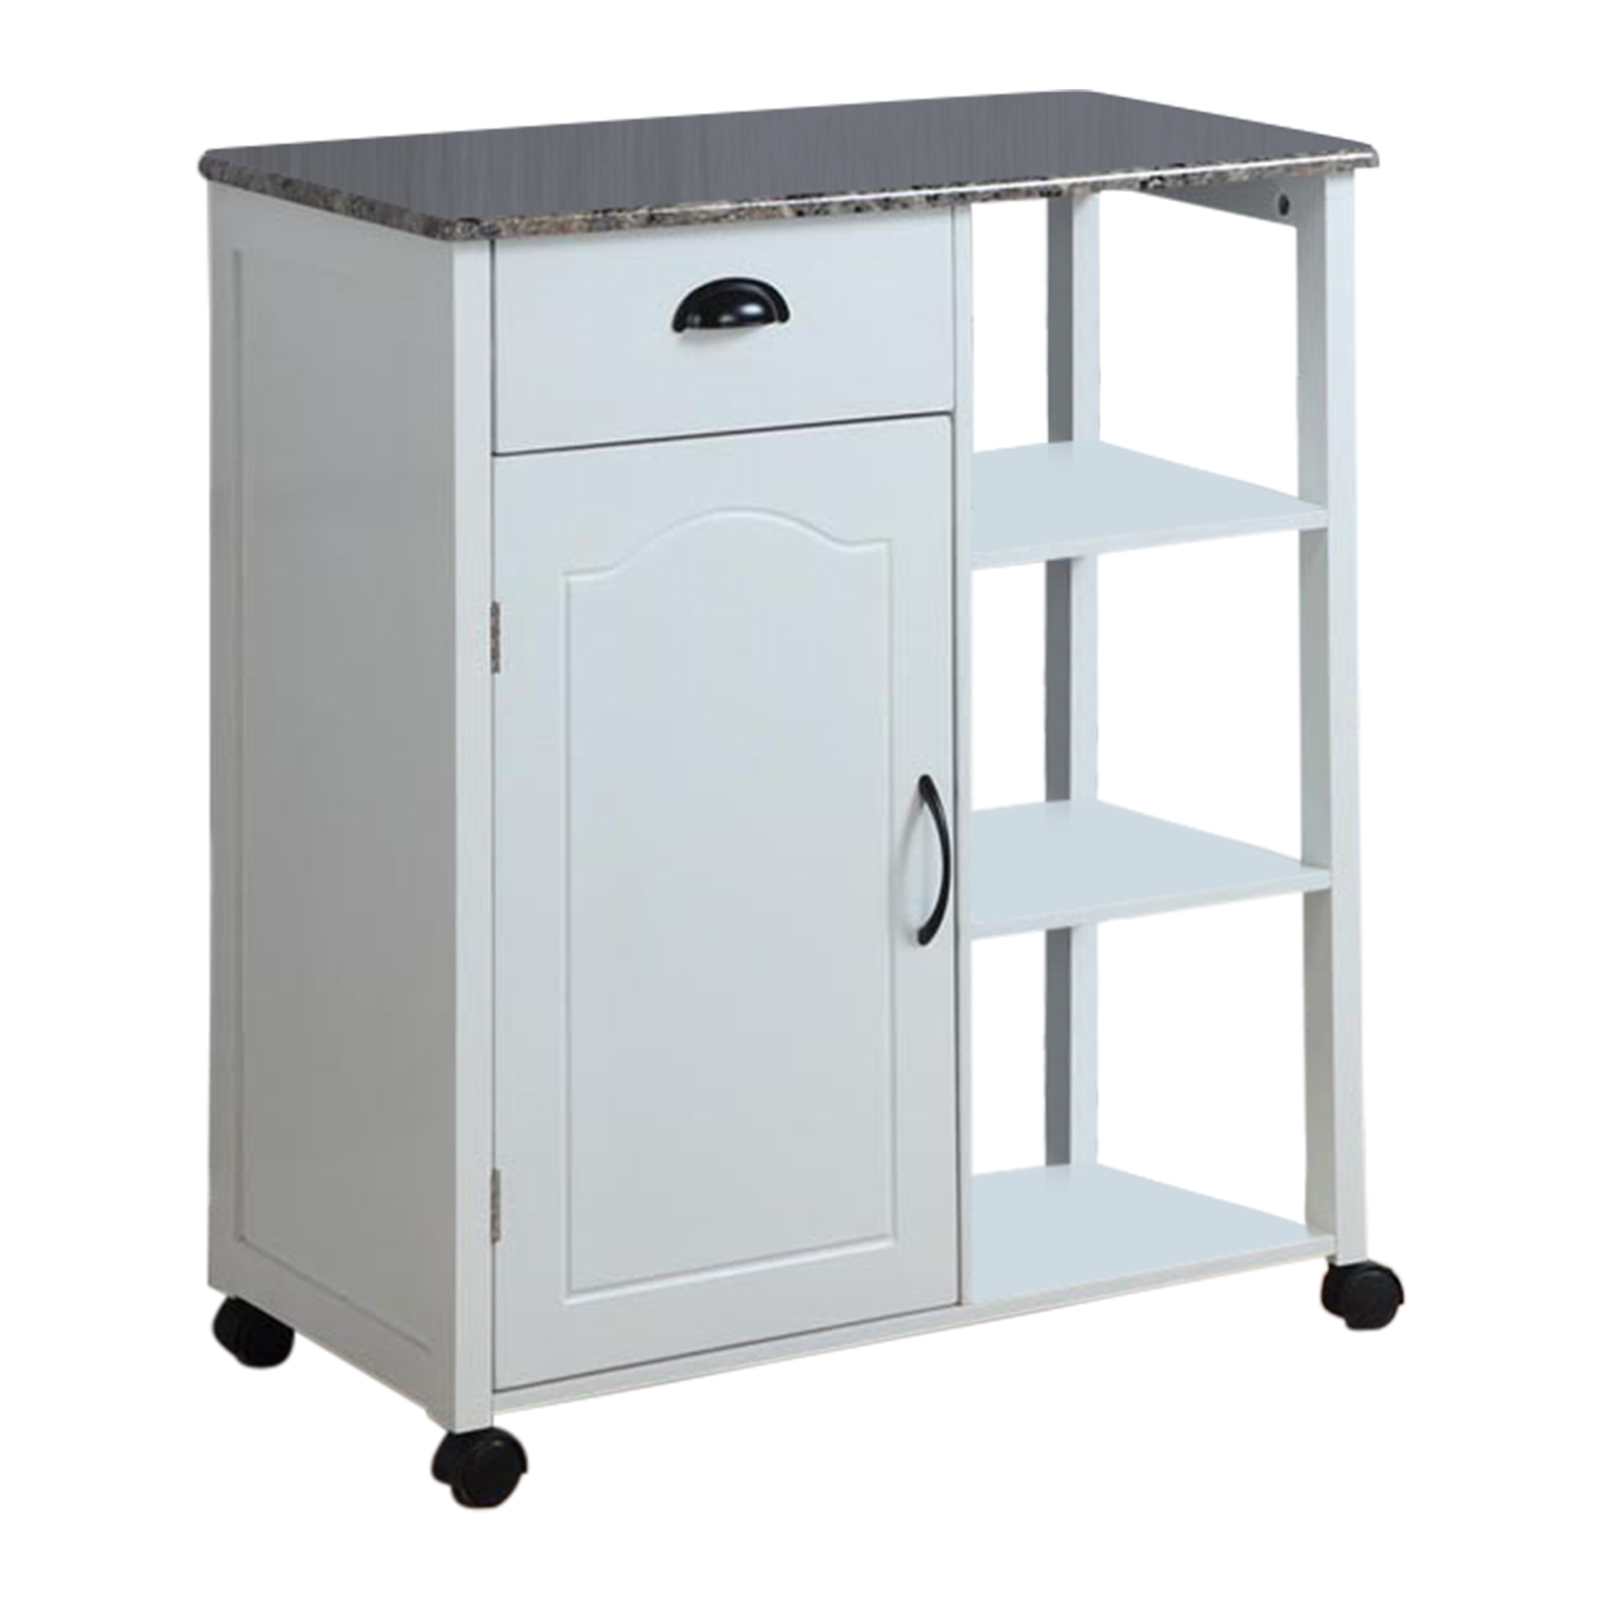 Kitchen Storage Cart - White | Hayneedle on small kitchen carts, kitchen storage shelf, kitchen storage hardware, kitchen storage cages, kitchen delivery carts, kitchen wine cart, industrial style kitchen carts, kitchen carts on wheels, serving carts, kitchen loading carts, kitchen carts home depot, kitchen cart at target, kitchen storage cans, kitchen cart with refrigerator, decor with painted kitchen carts, kitchen cart with drop leaf, kitchen carts w drawers, kitchen islands from lowe's, bed bath and beyond kitchen carts, kitchen island cart,